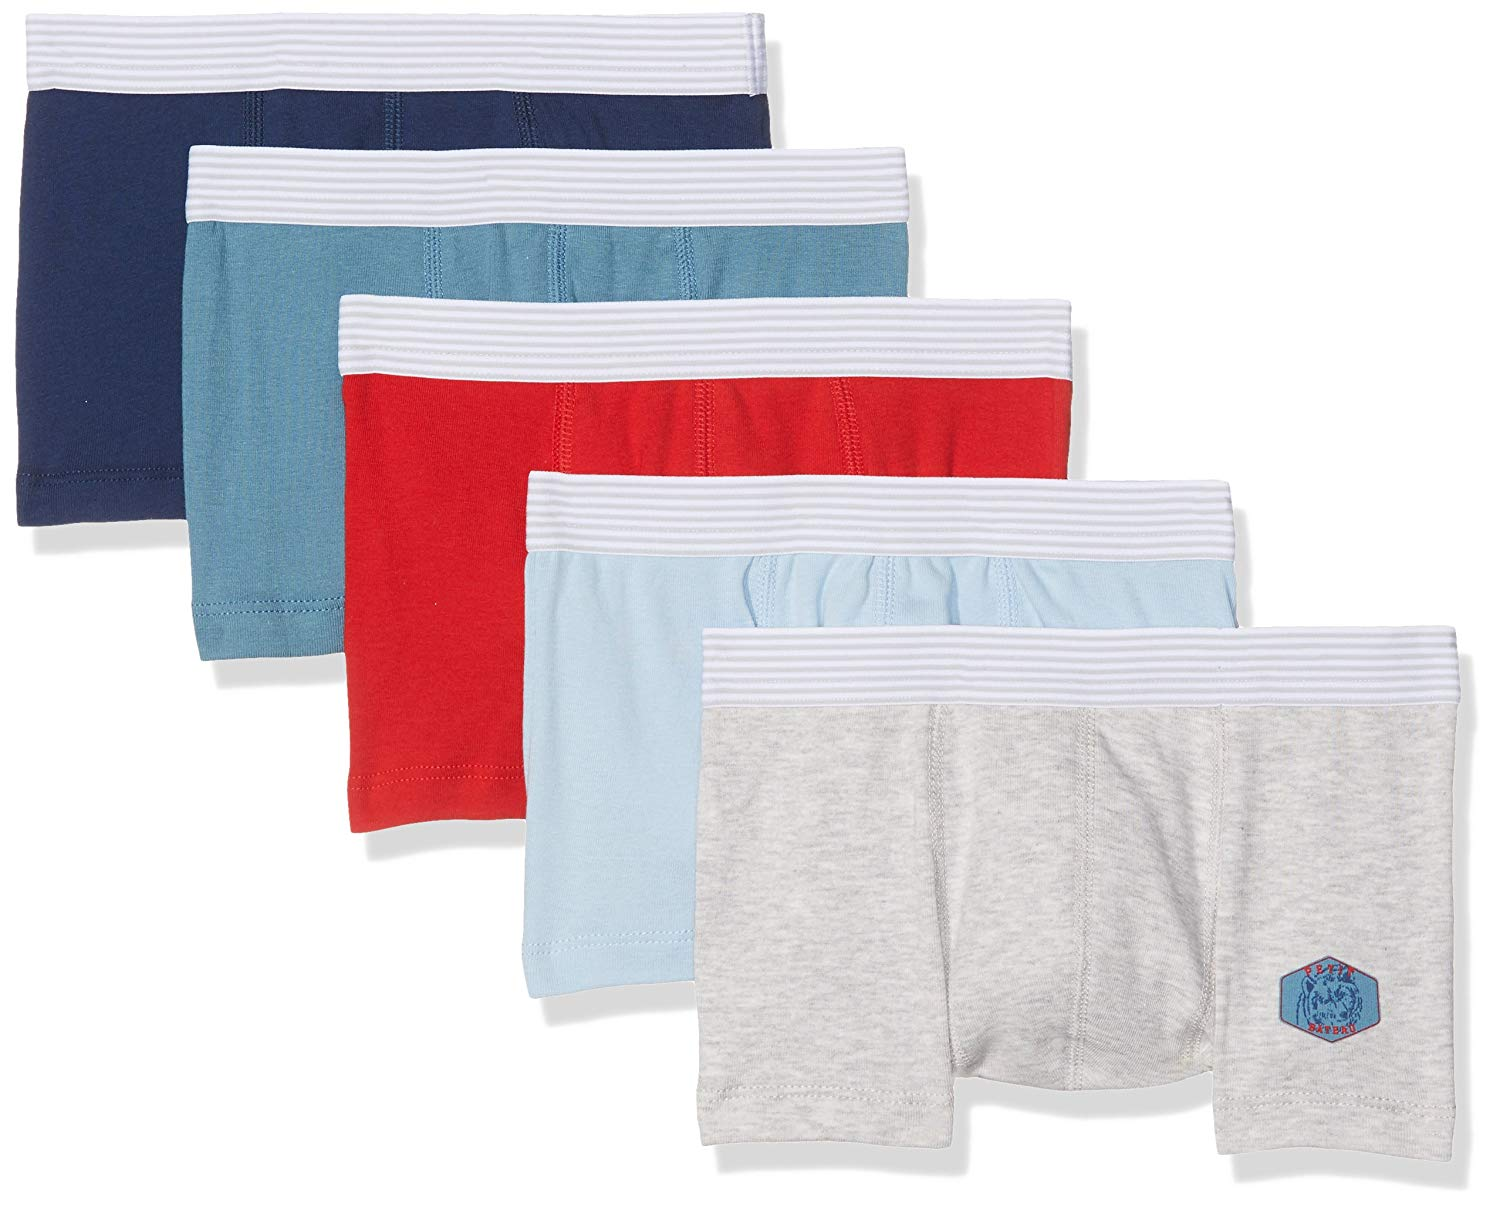 Cheap Boys Boxers Size 5 Find Boys Boxers Size 5 Deals On Line At